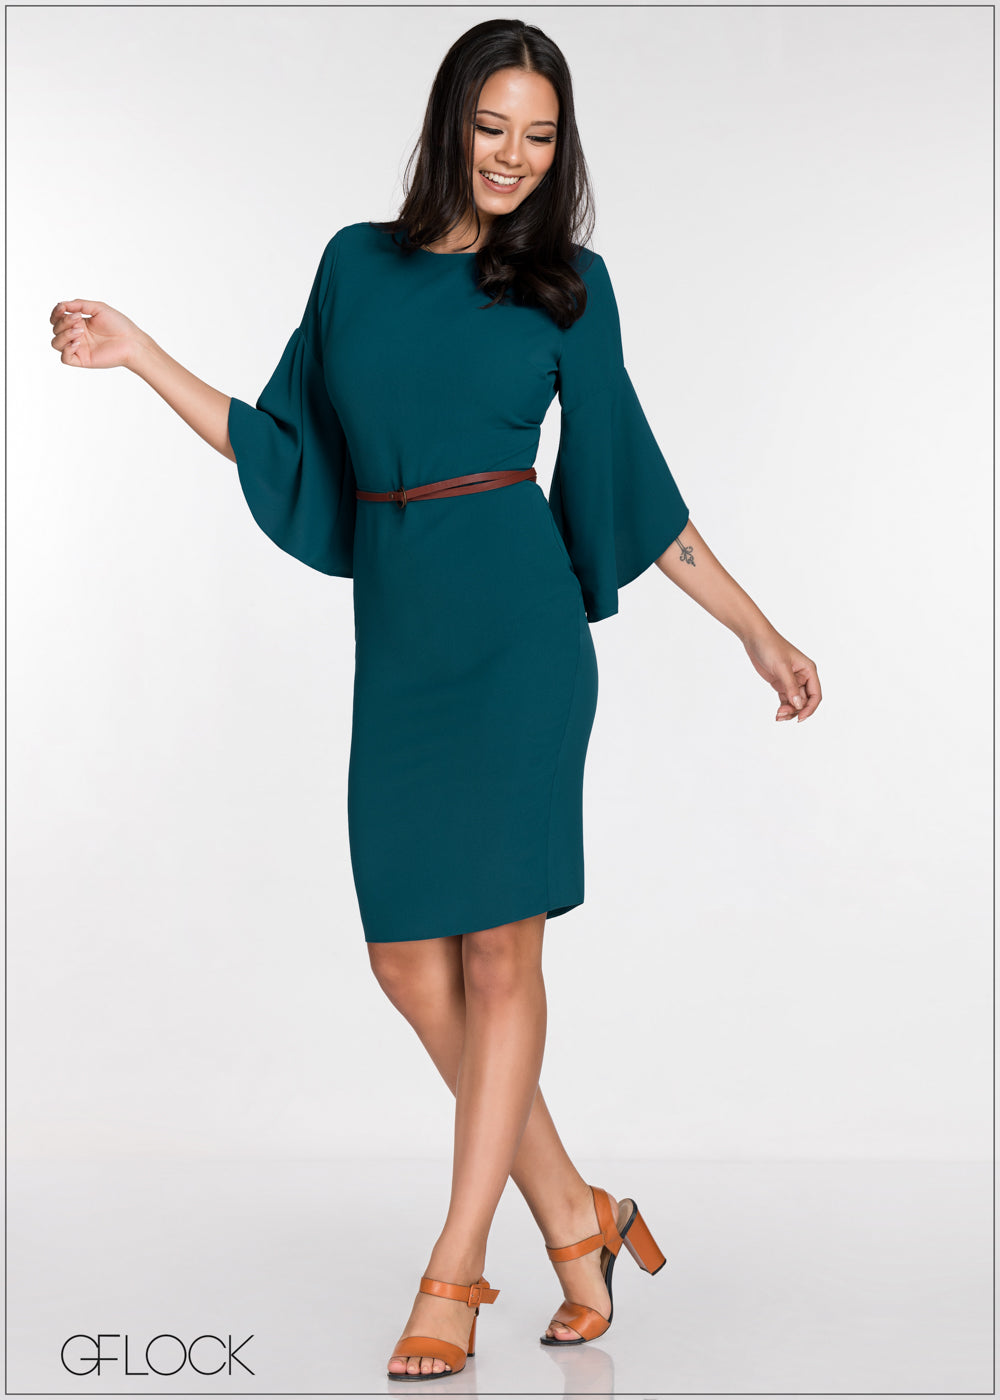 Flared Sleeve Bodycon Dress - GFLOCK.LK